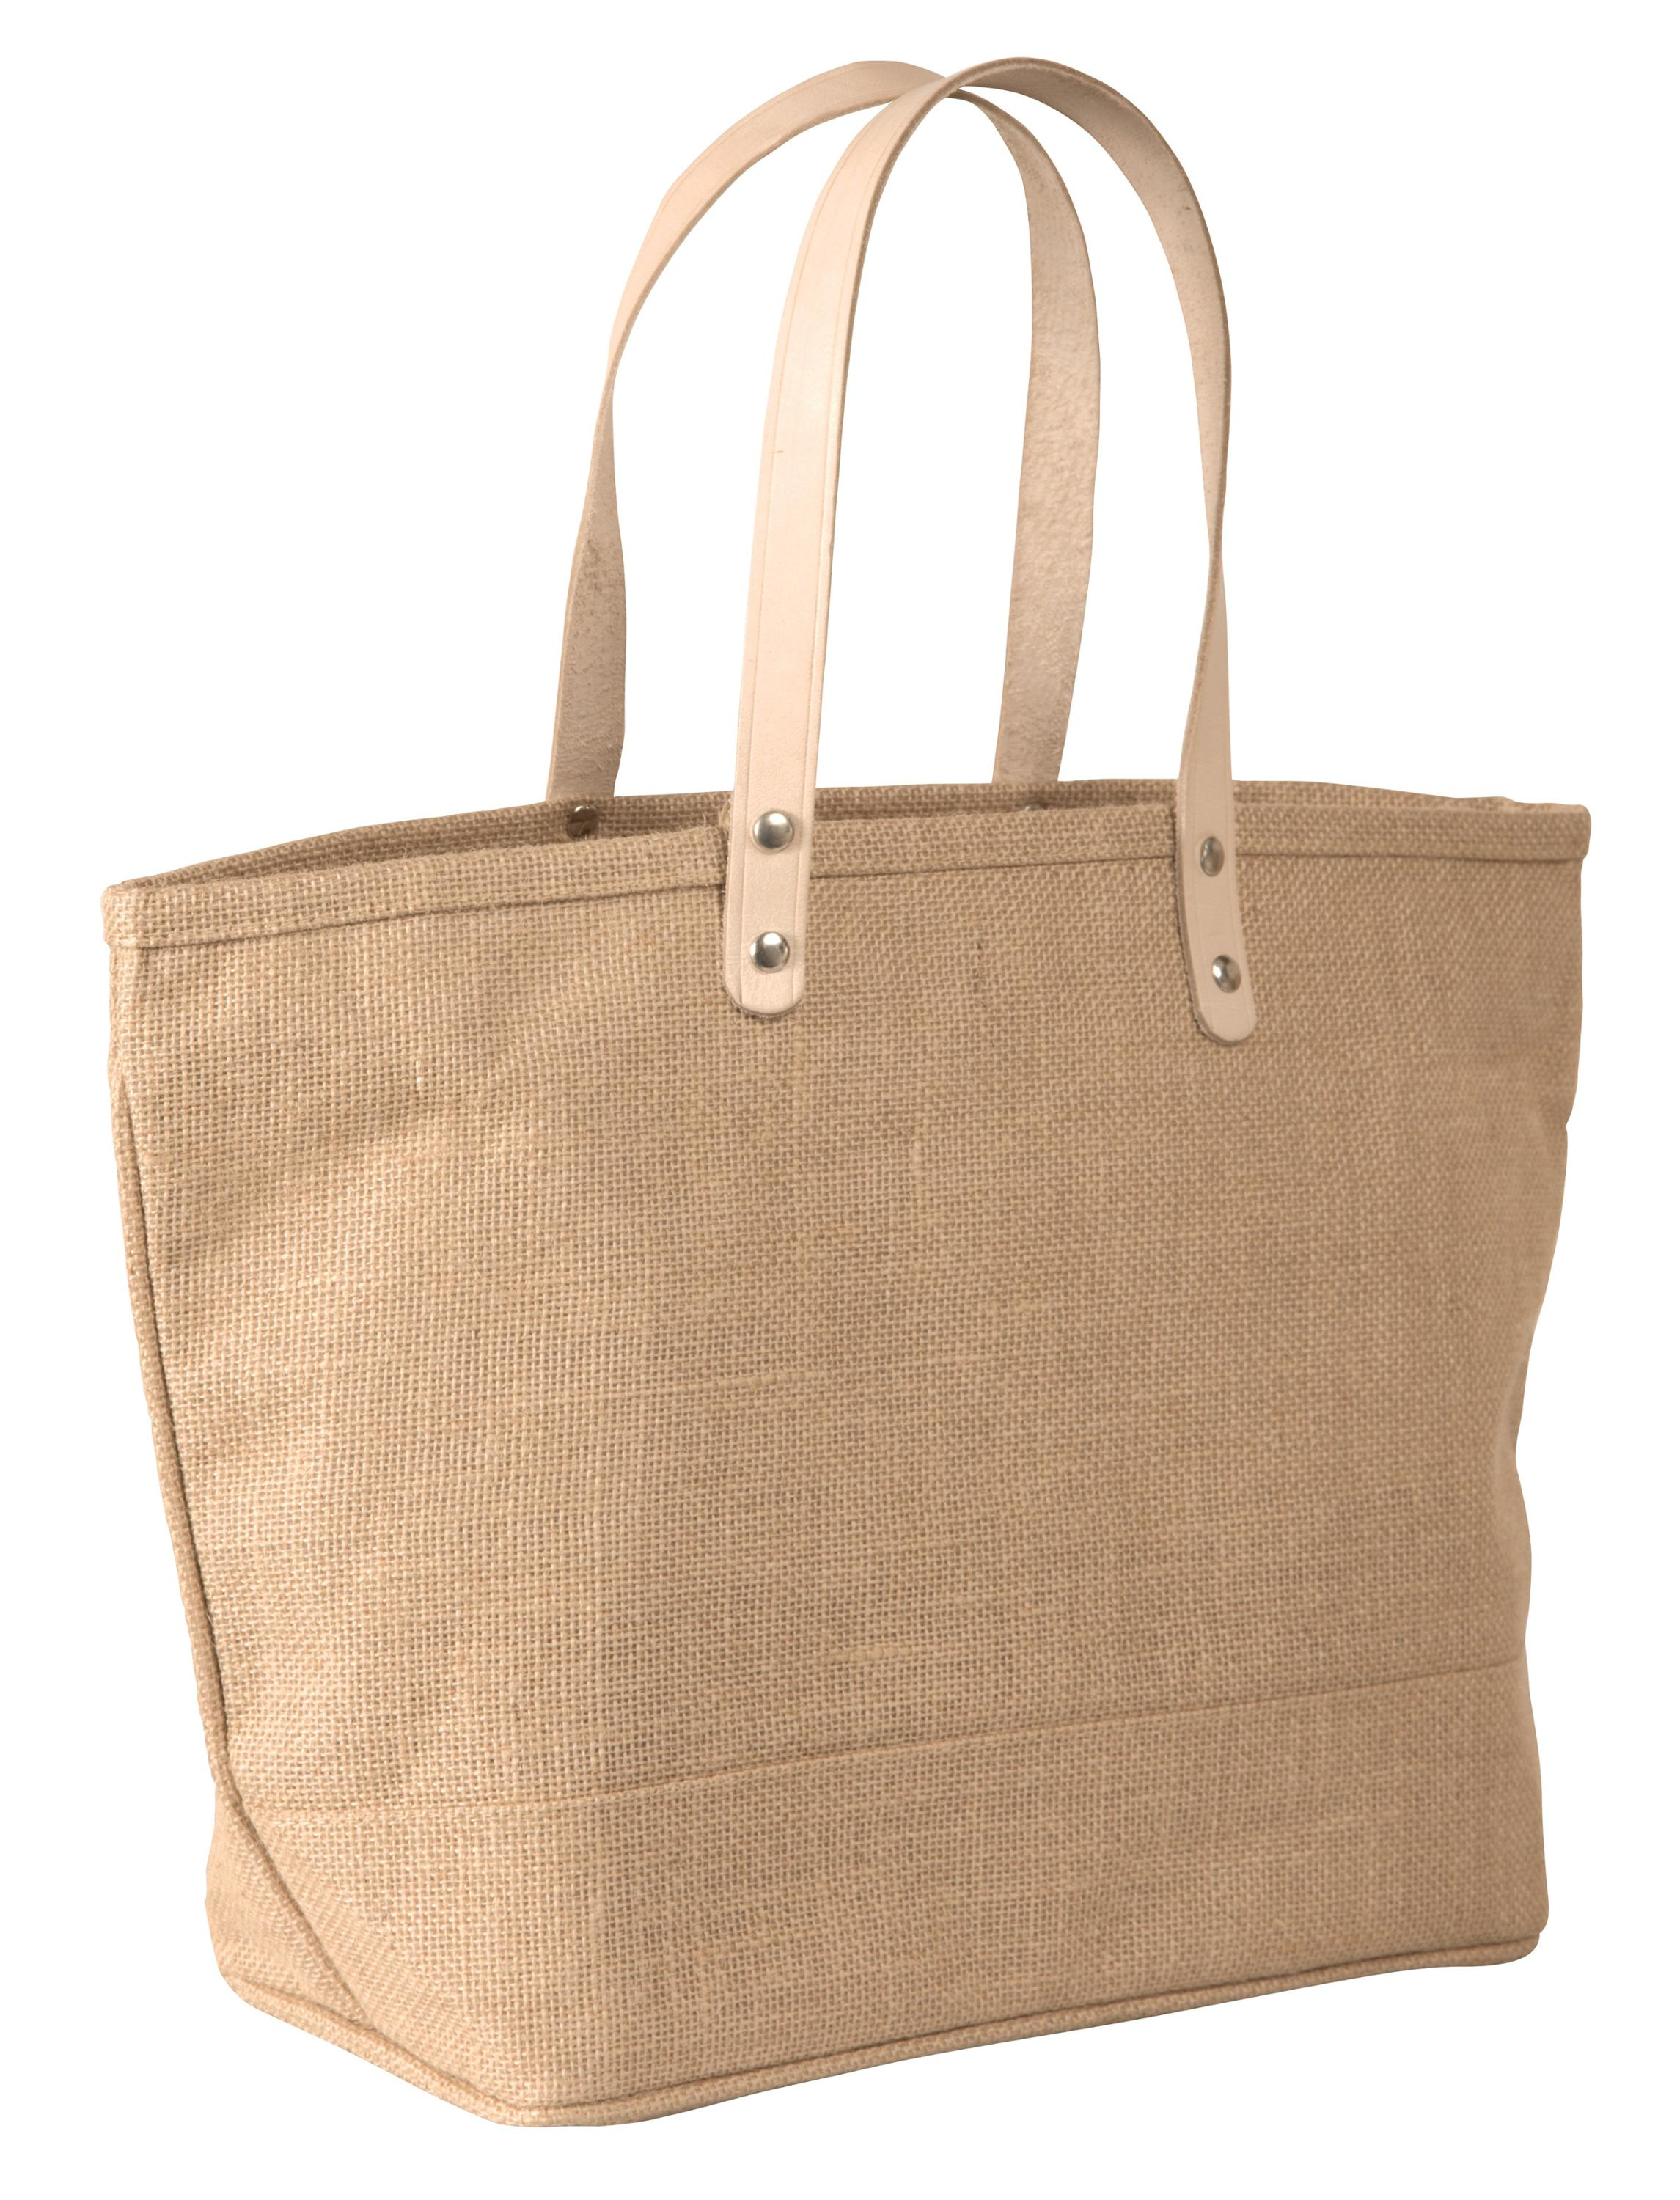 Large Jute Burlap Tote Bag With Leather Handles Plain Bags Product On Alibaba